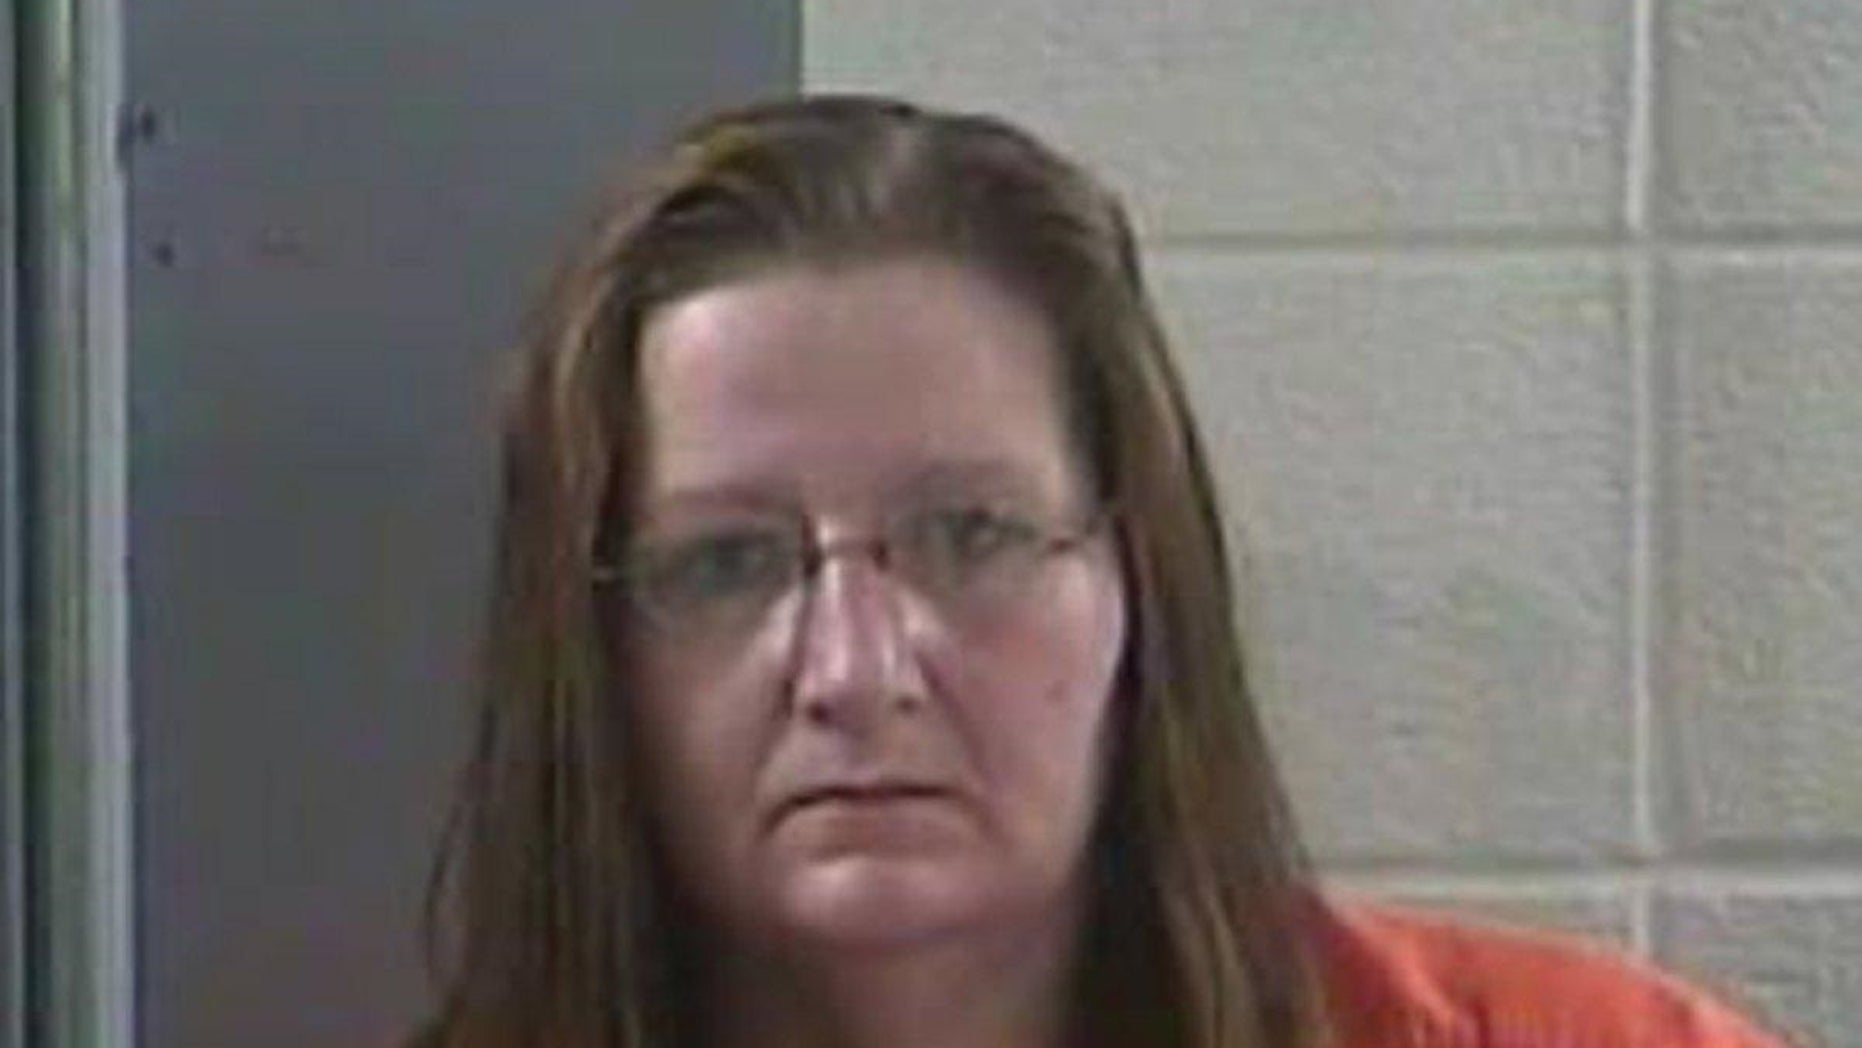 Vera Wooten allegedly set her husband on fire.